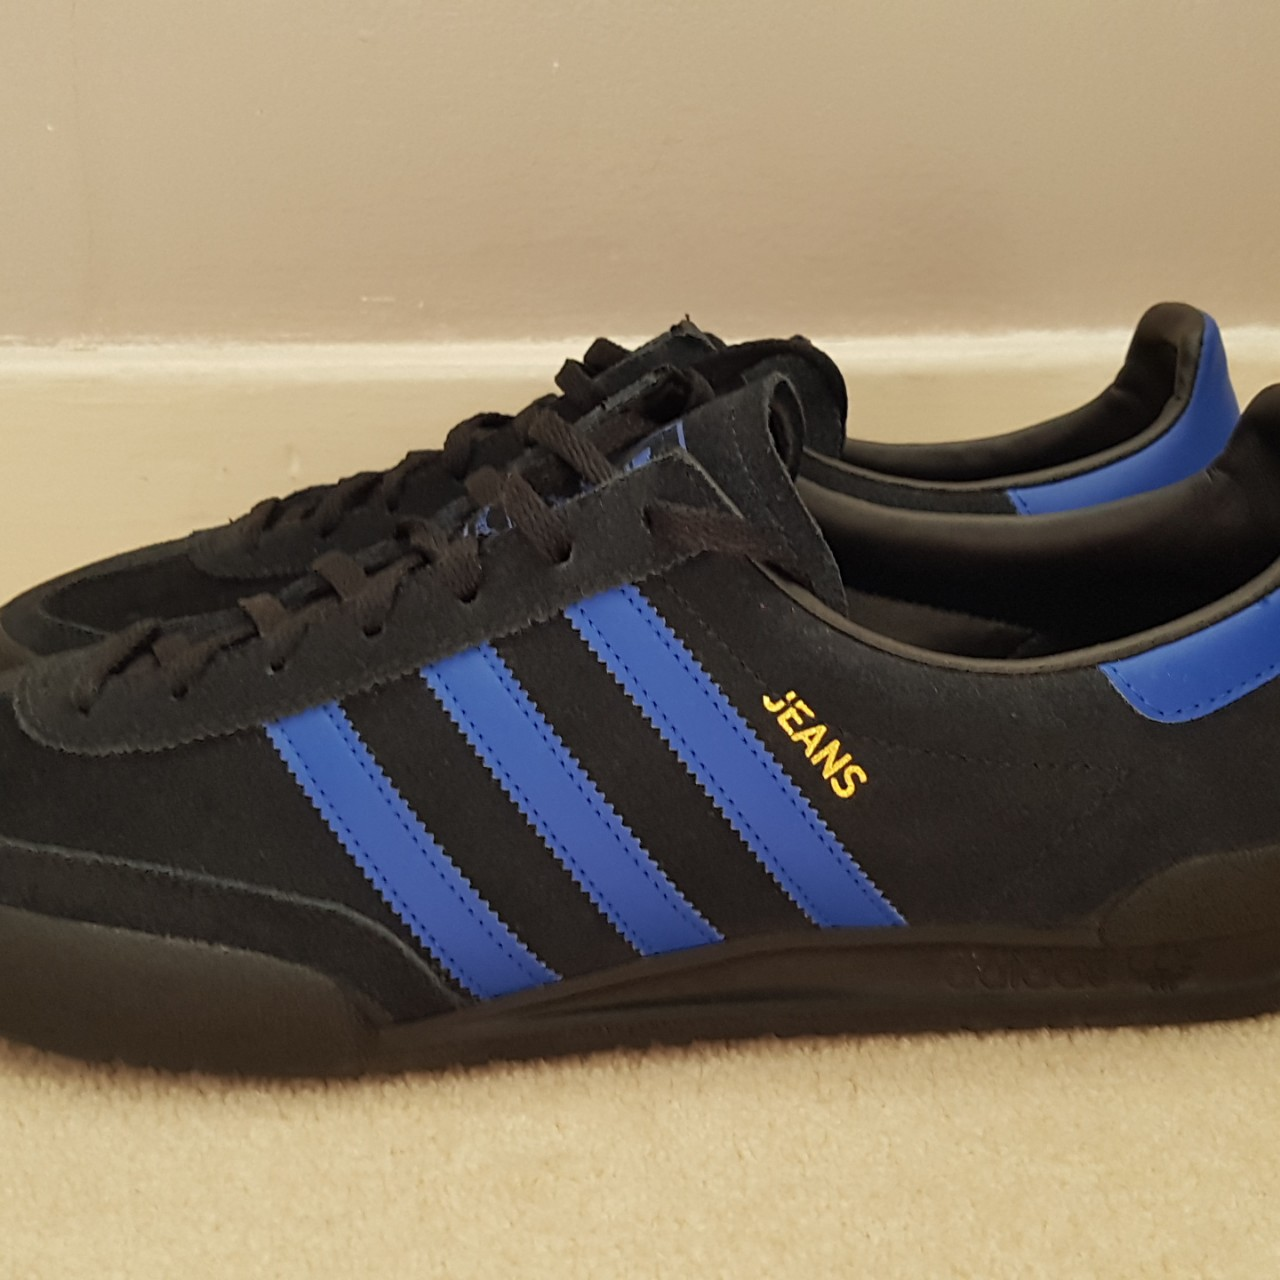 Adidas jeans JD EXCLUSIVE size 11 Worn